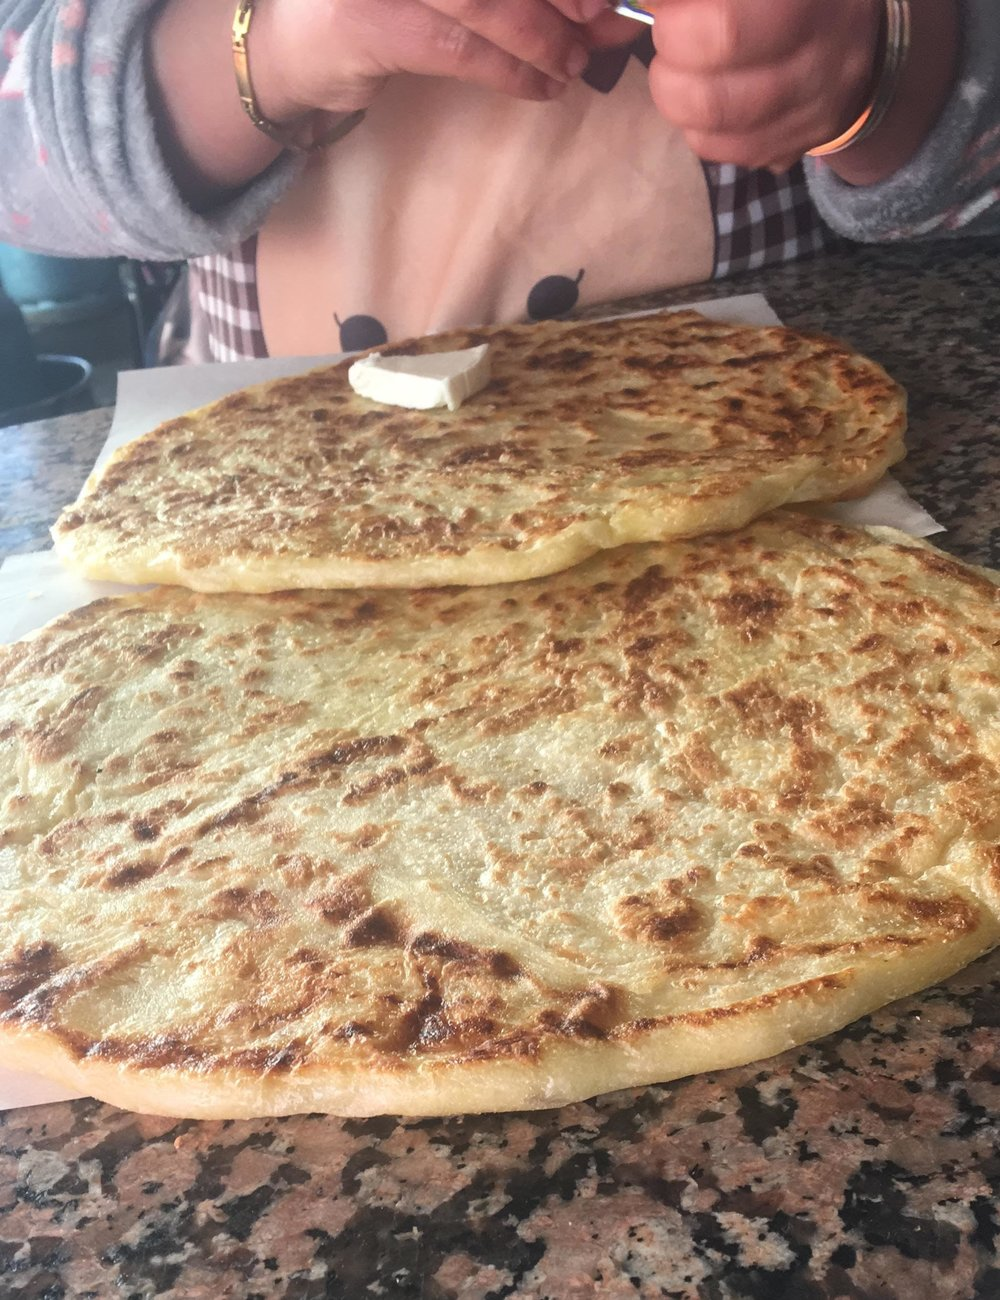 Mmm… msemen. This typical Moroccan breakfast bread, usually served with oils, honey, cheese, or stuffed with spices or meat. The dough is kneaded, stretched, and layered so that when it is cooked on a griddle it becomes a flakey, doughy, delicious pancake-like treat. Photo Credit: L. Fisher, Spring 2019